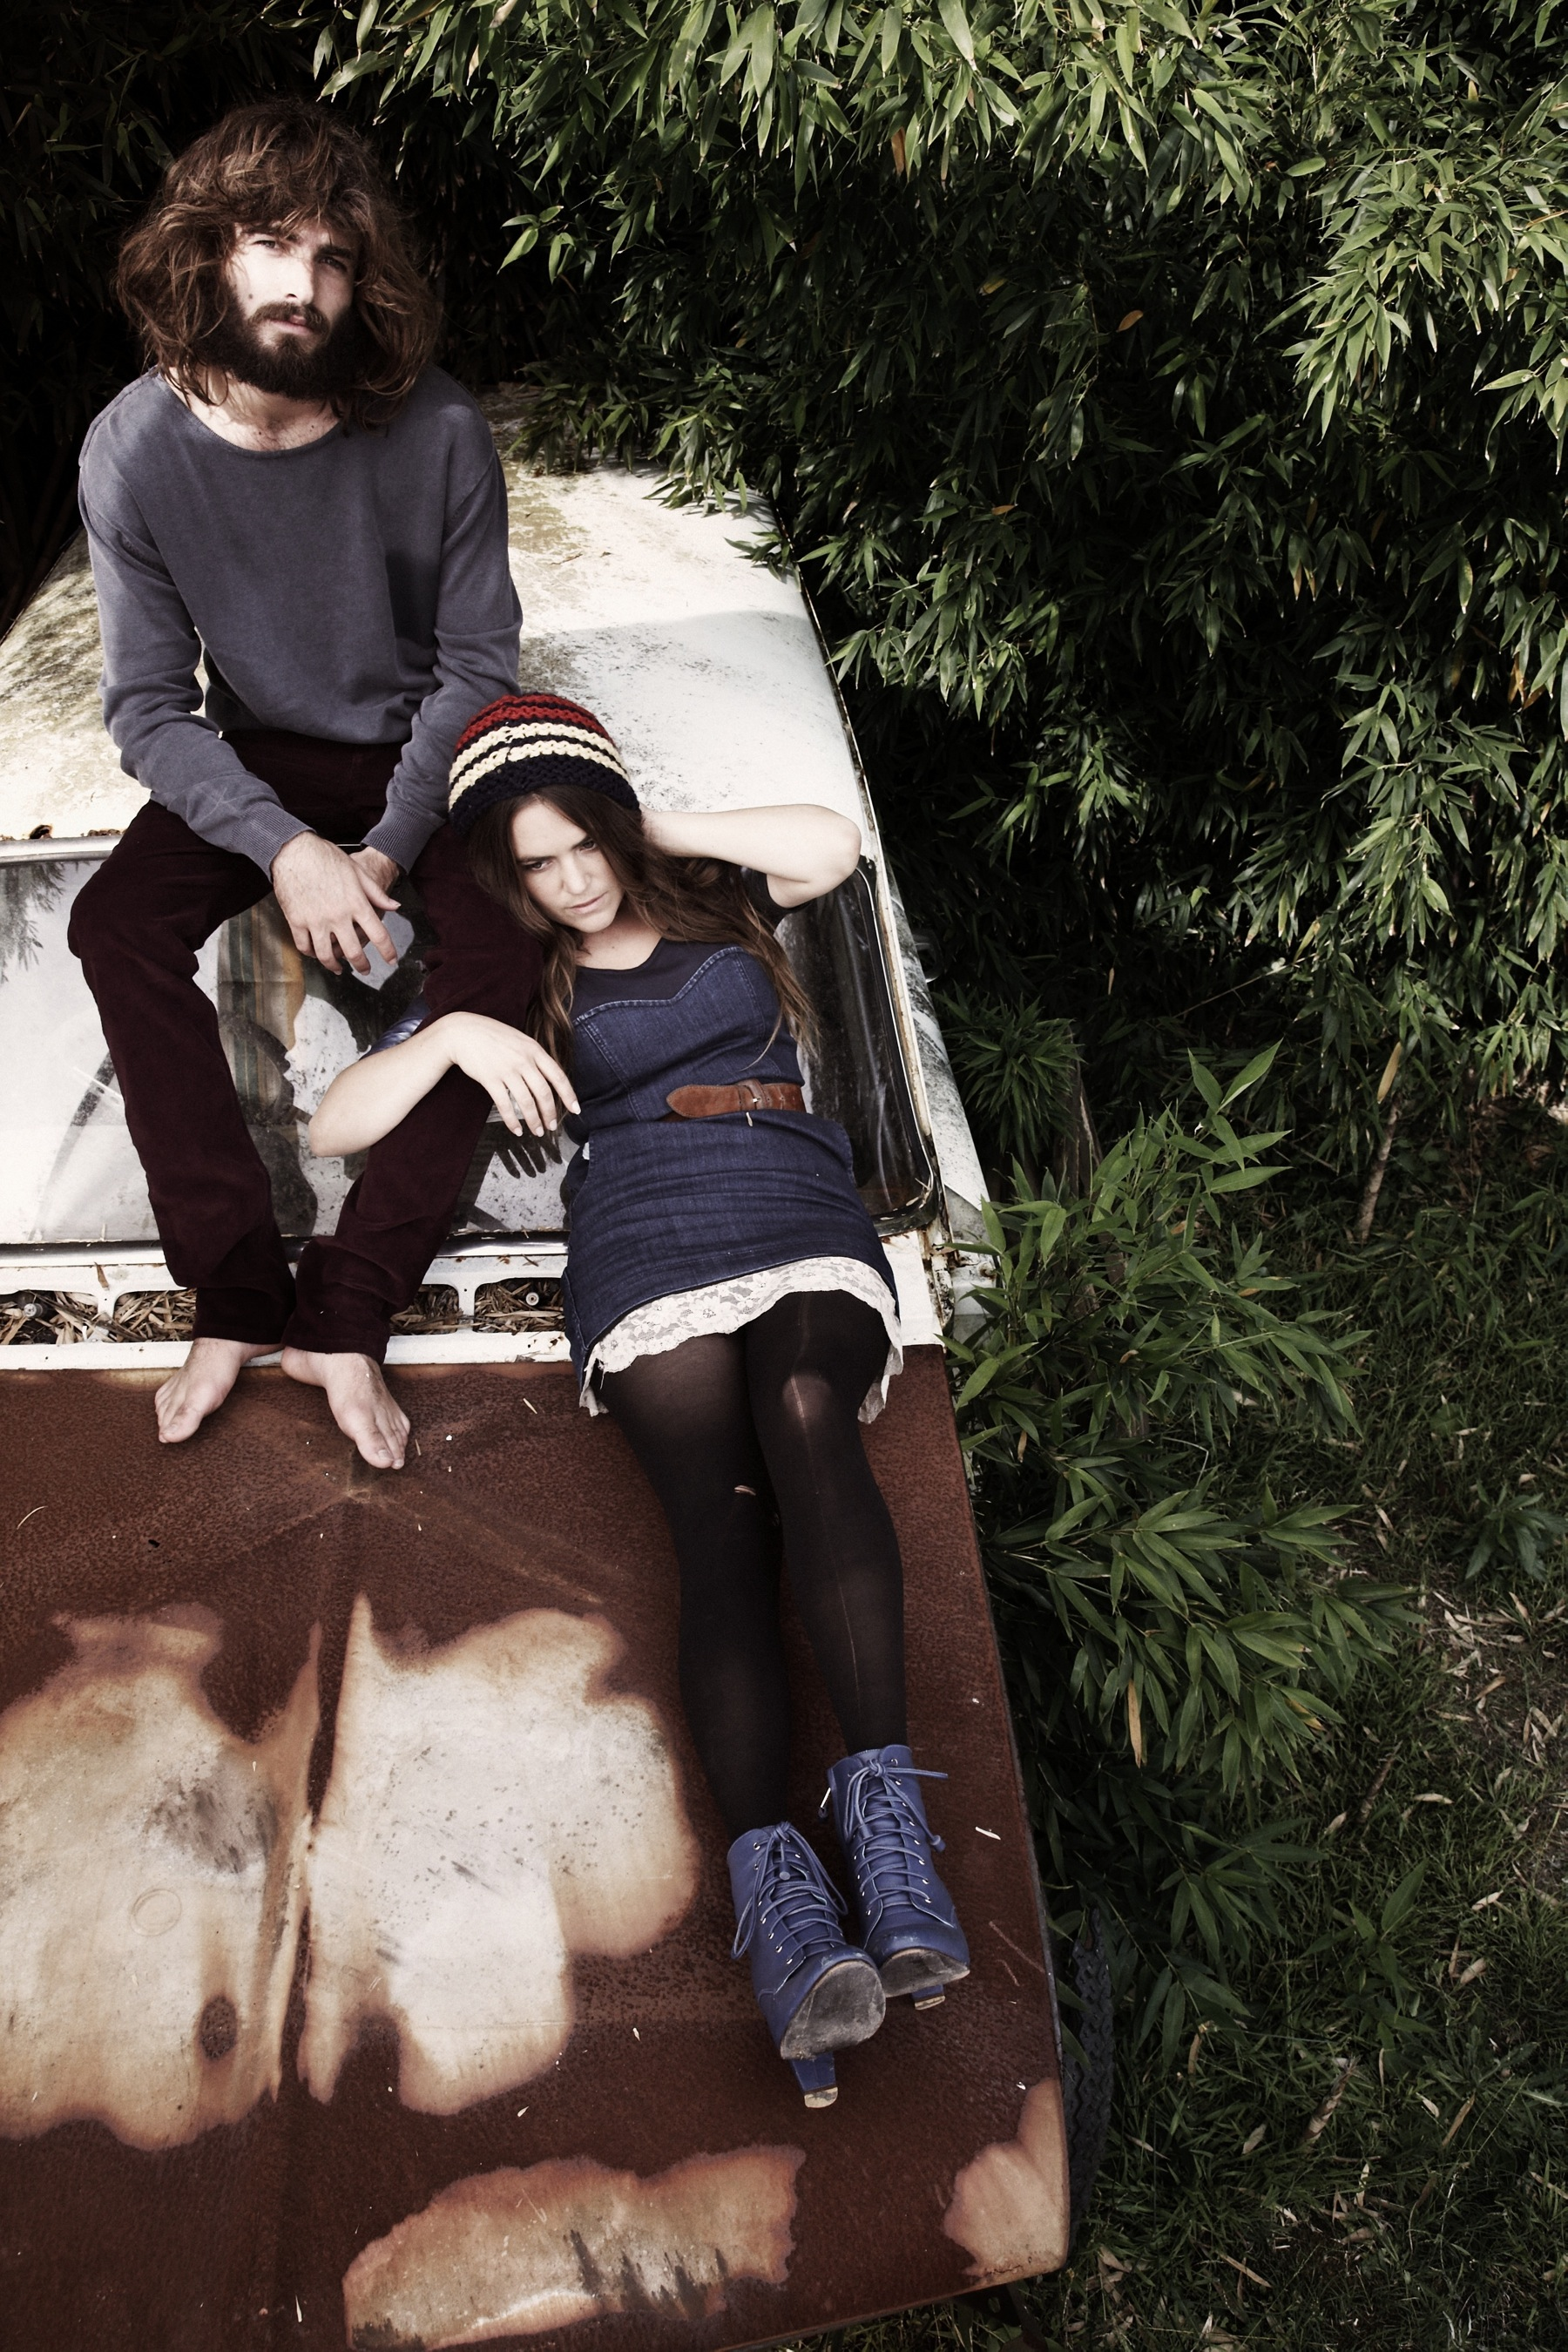 angus and julia stone on pinterest julia stone angus julia stone and angus stone. Black Bedroom Furniture Sets. Home Design Ideas